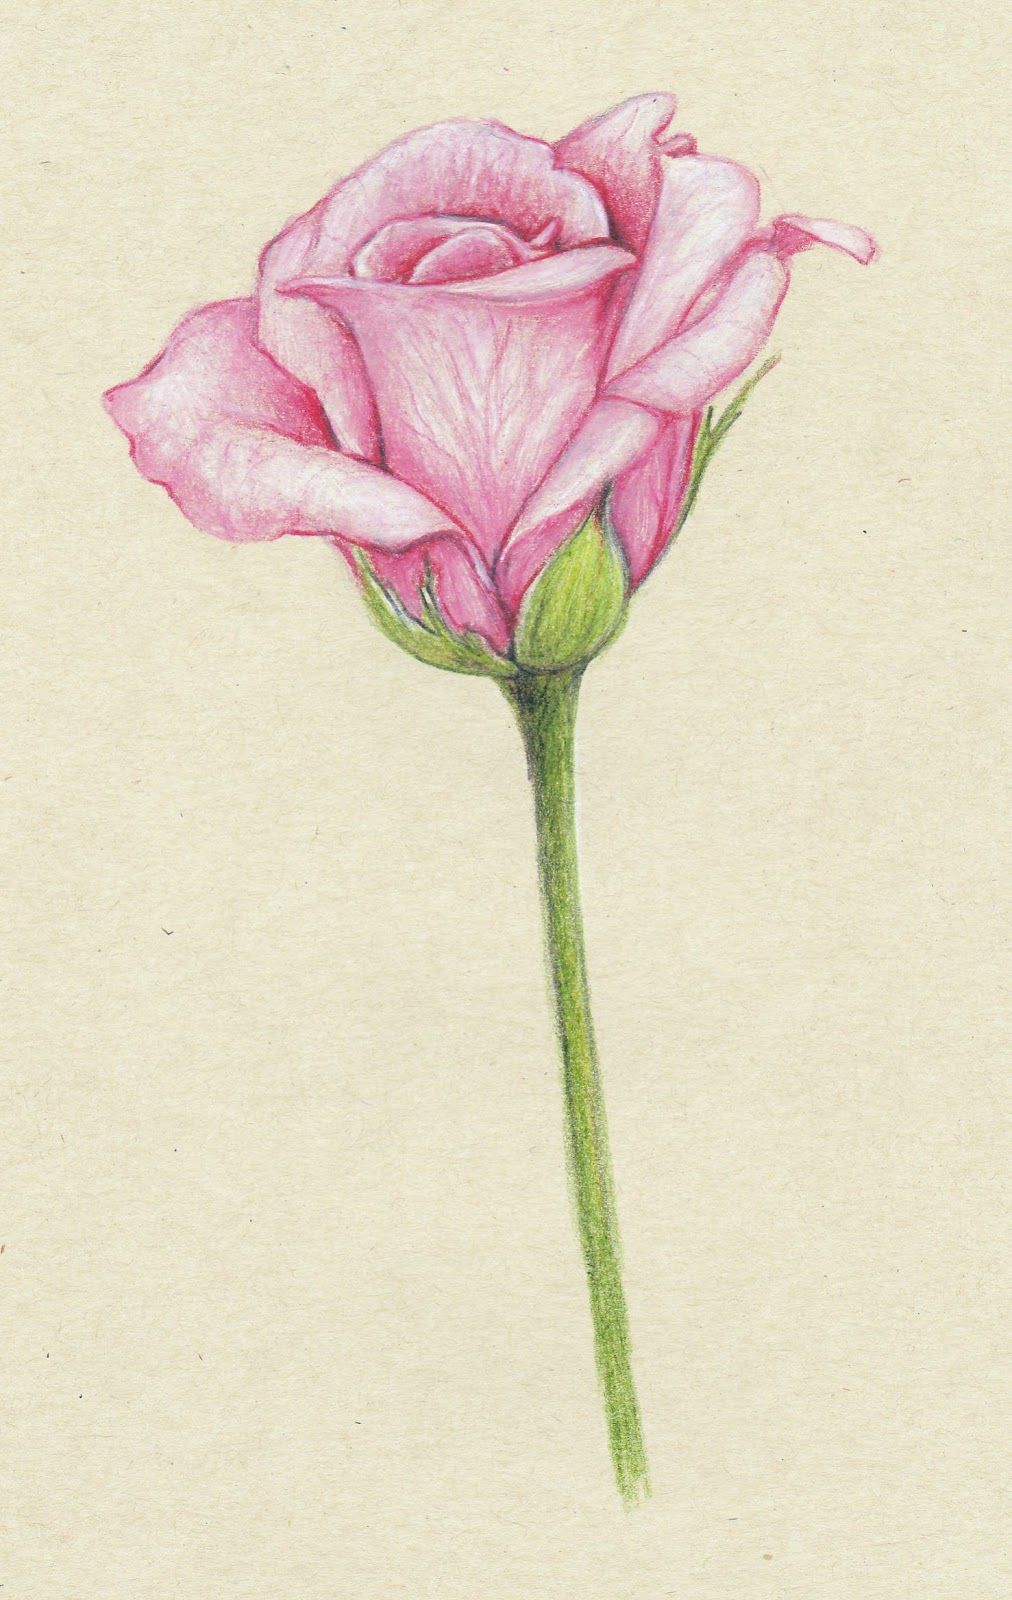 drawings of flowers Google Search Pencil drawings of